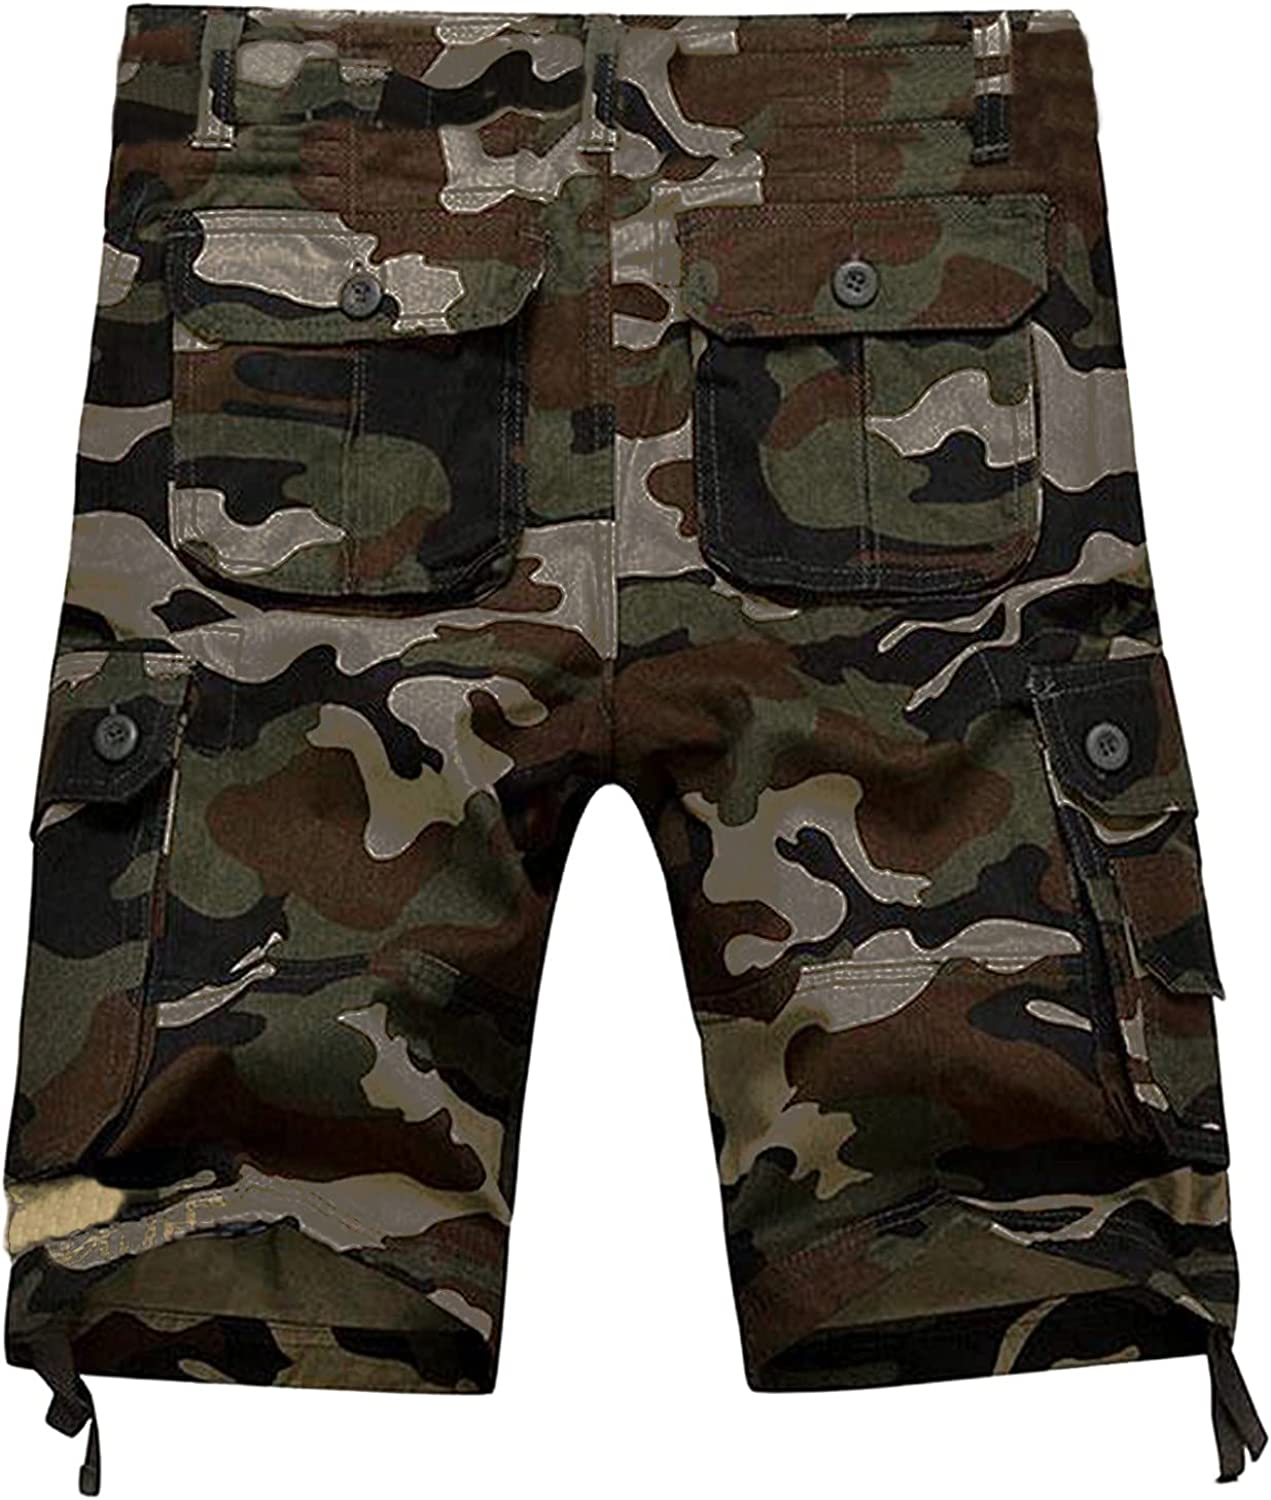 Men's Camouflage Color Shorts Camping & Hiking Leisure with Zipper Pocket Skinny Jeans Overalls